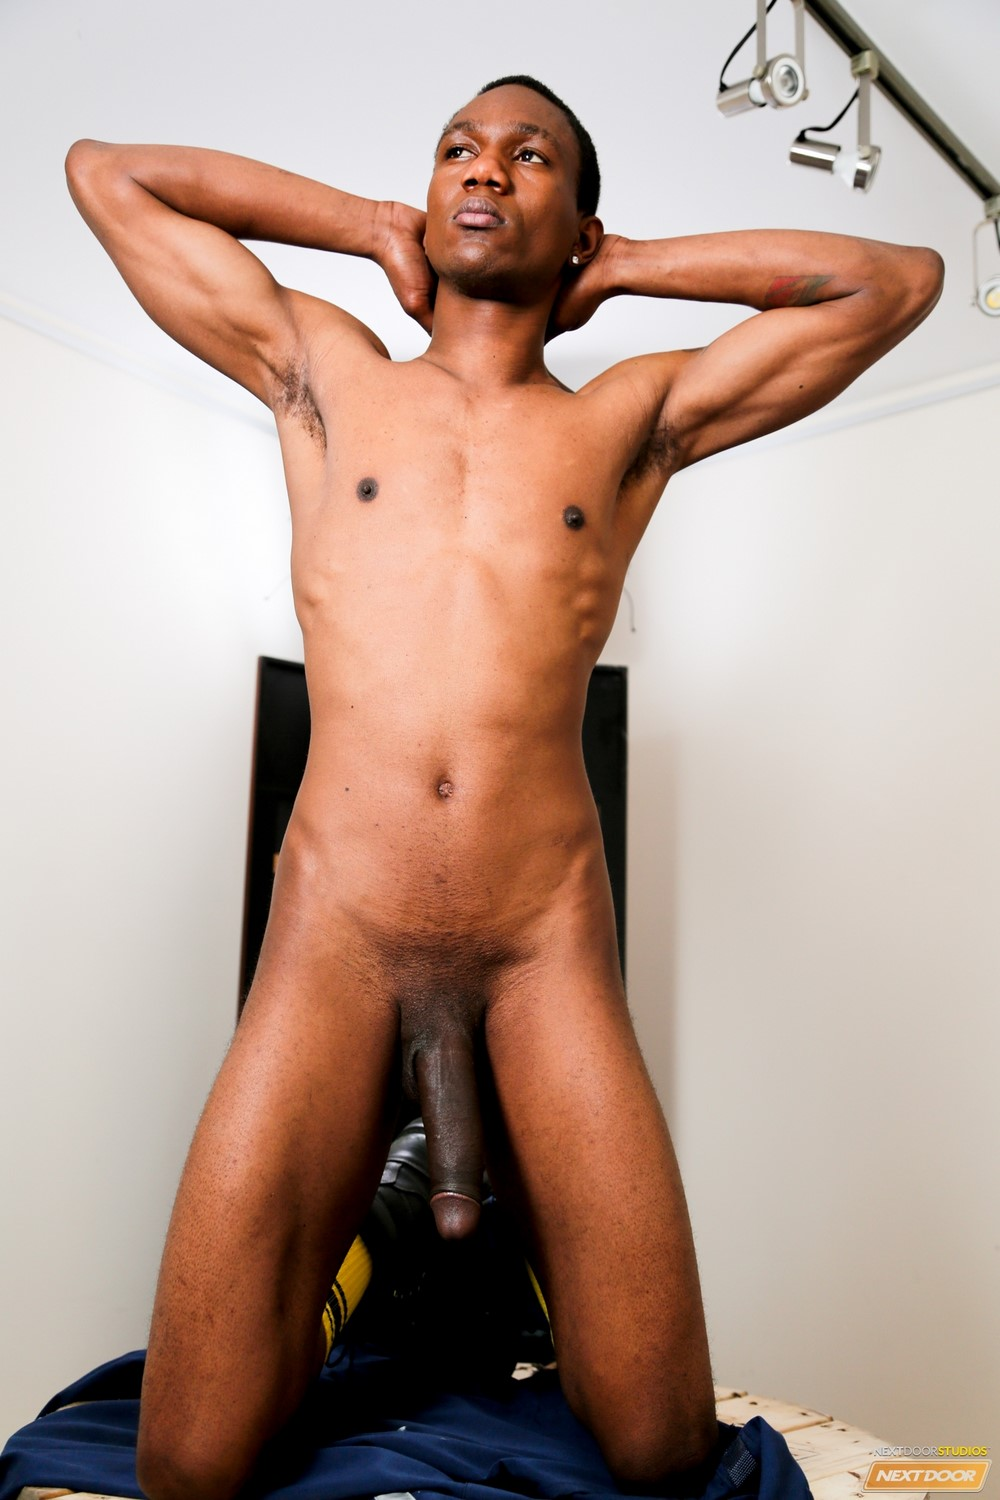 don't want tamed, joey works andrews cock send message and photo